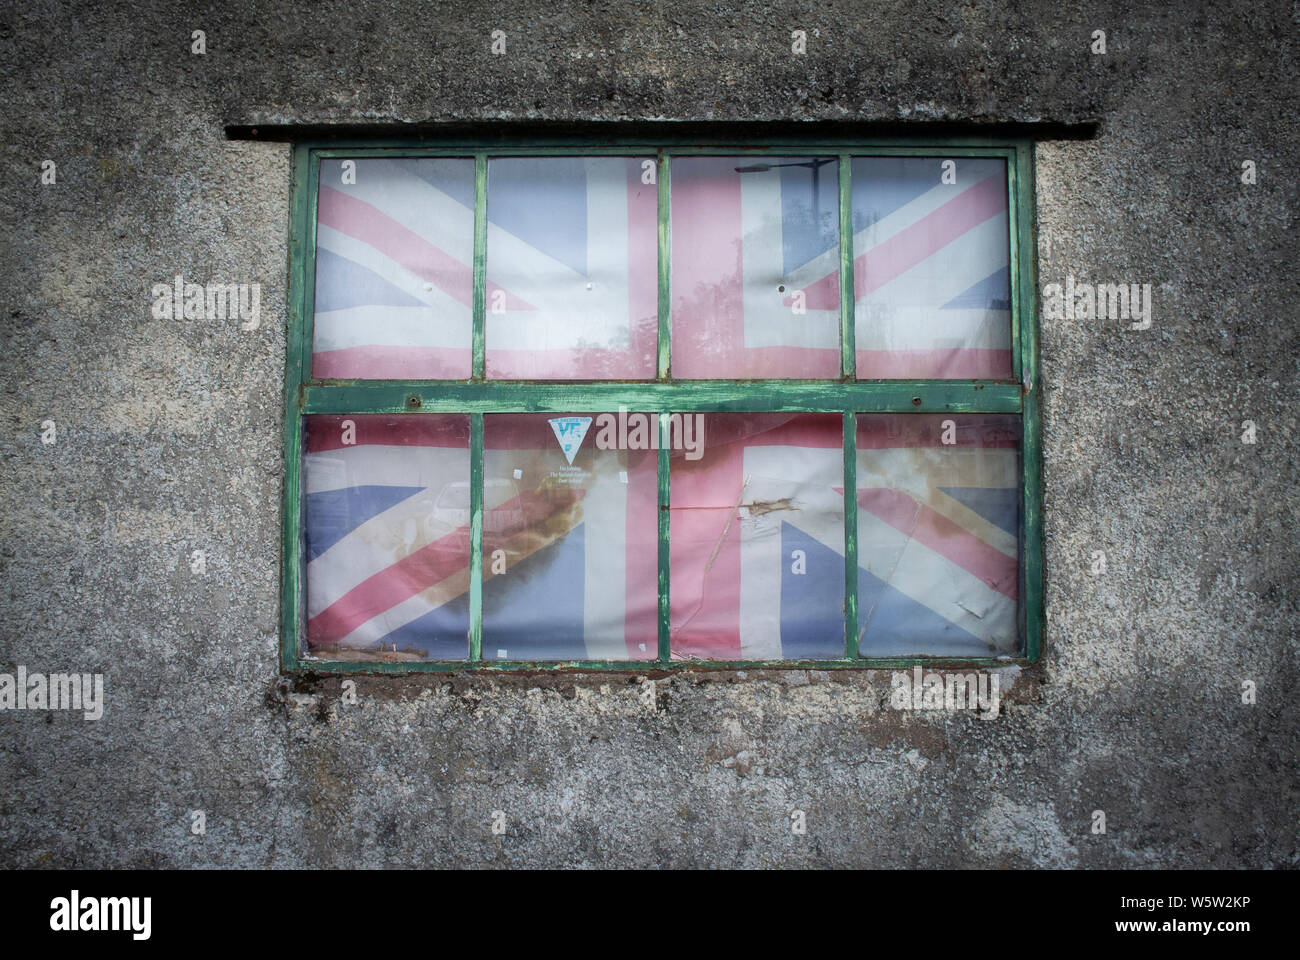 Faded Stock Photos & Faded Stock Images - Alamy